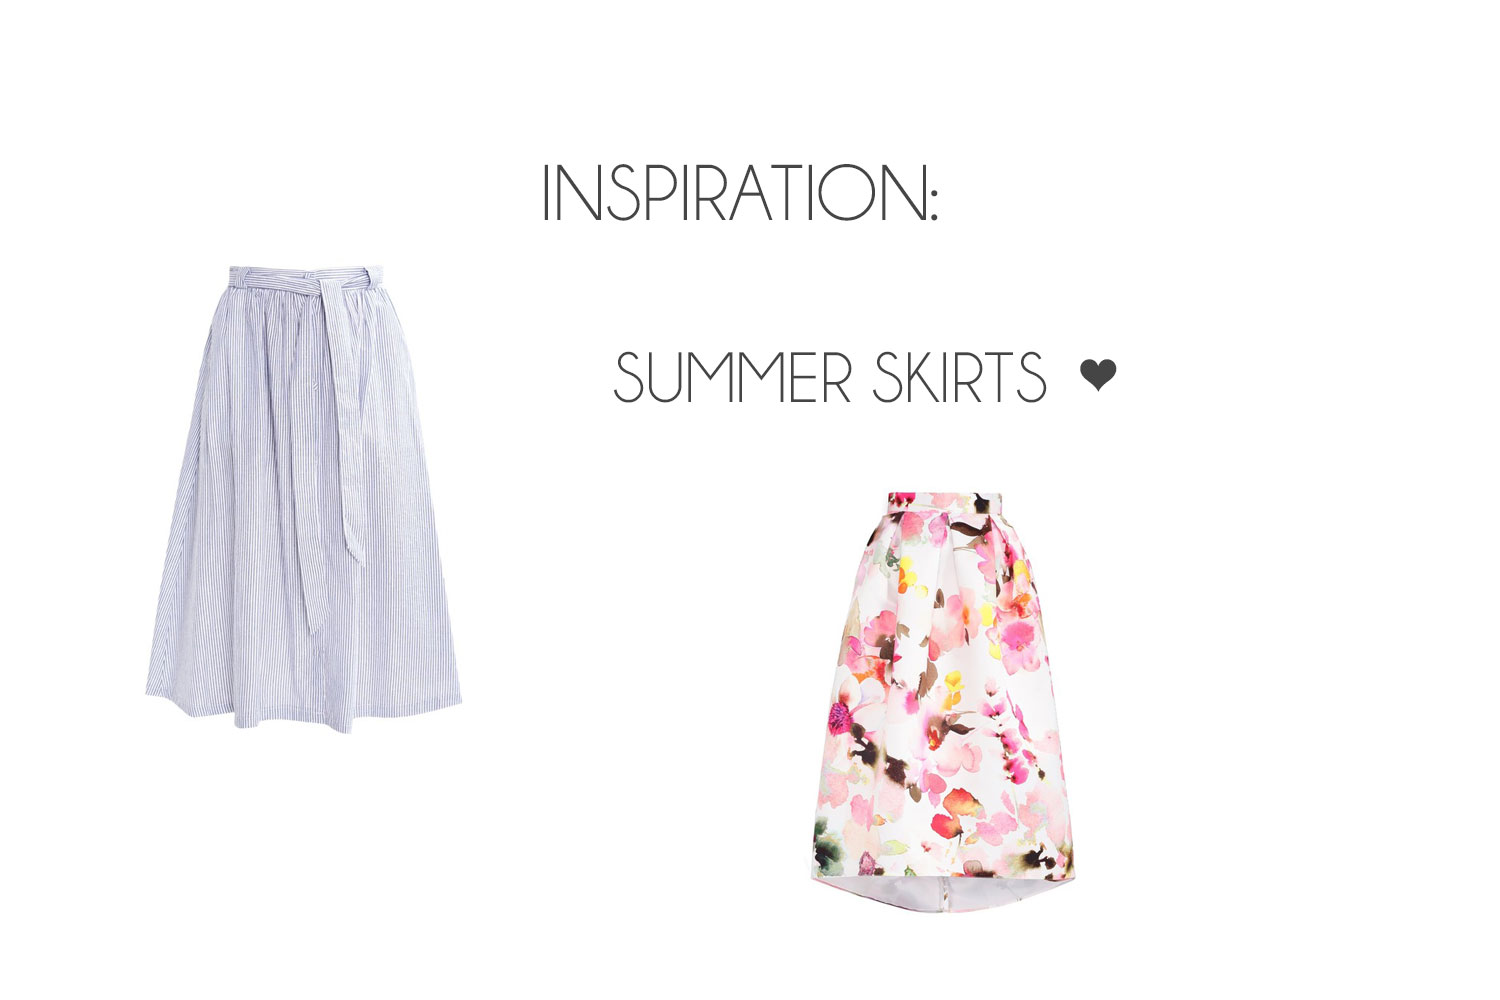 Outfit: White Blouse w/ Statement Sleeves | München - Summer skirts